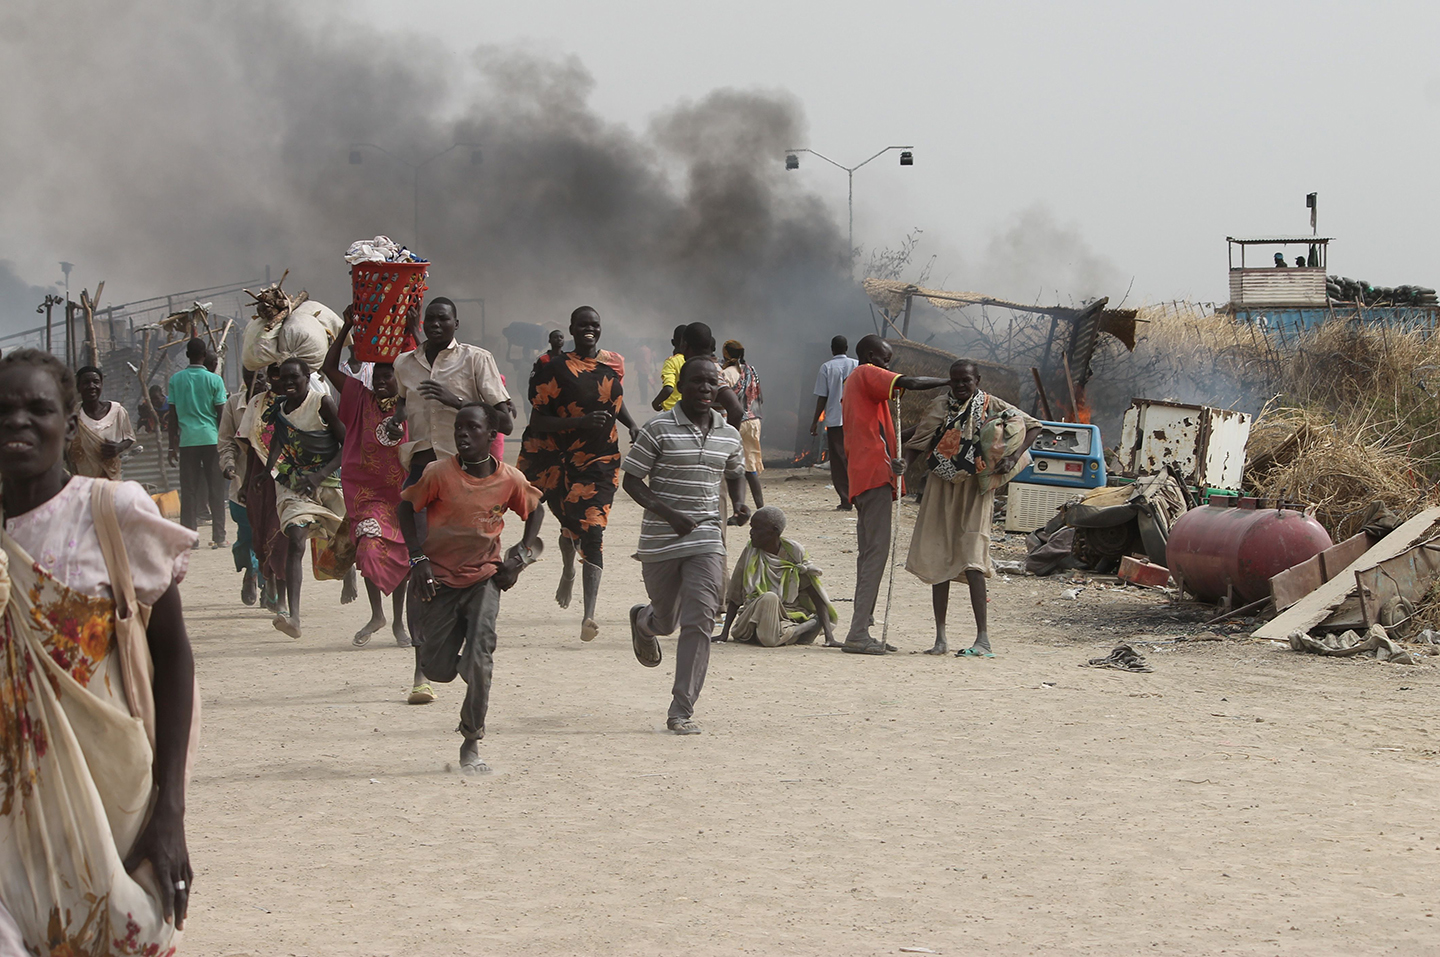 TOPSHOT - South Sudanese civilians flee fighting in an United Nations base in the northeastern town of Malakal on February 18, 2016, where gunmen opened fire on civilians sheltering inside killing at least five people.</p> <p>Gunfire broke out in the base in Malakal in the northeast Upper Nile region on February 17, 2016 night, with clashes continuing on Thursday morning that left large plumes of smoke rising from burning tents in the camp which houses over 47,000 civilians.<br />  / AFP / Justin LYNCH        (Photo credit should read JUSTIN LYNCH/AFP/Getty Images)